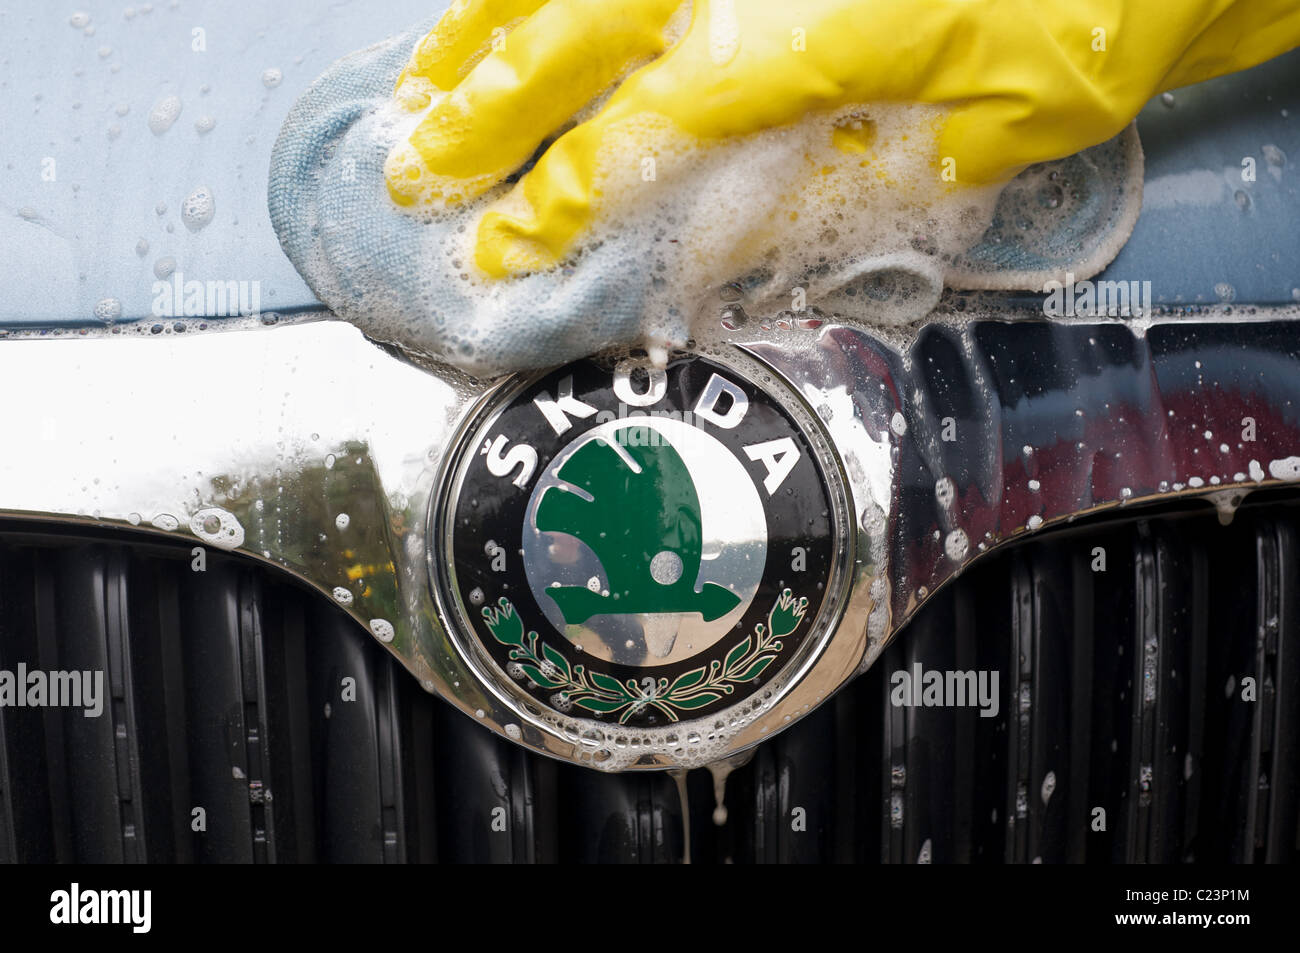 Skoda car being hand washed - Stock Image